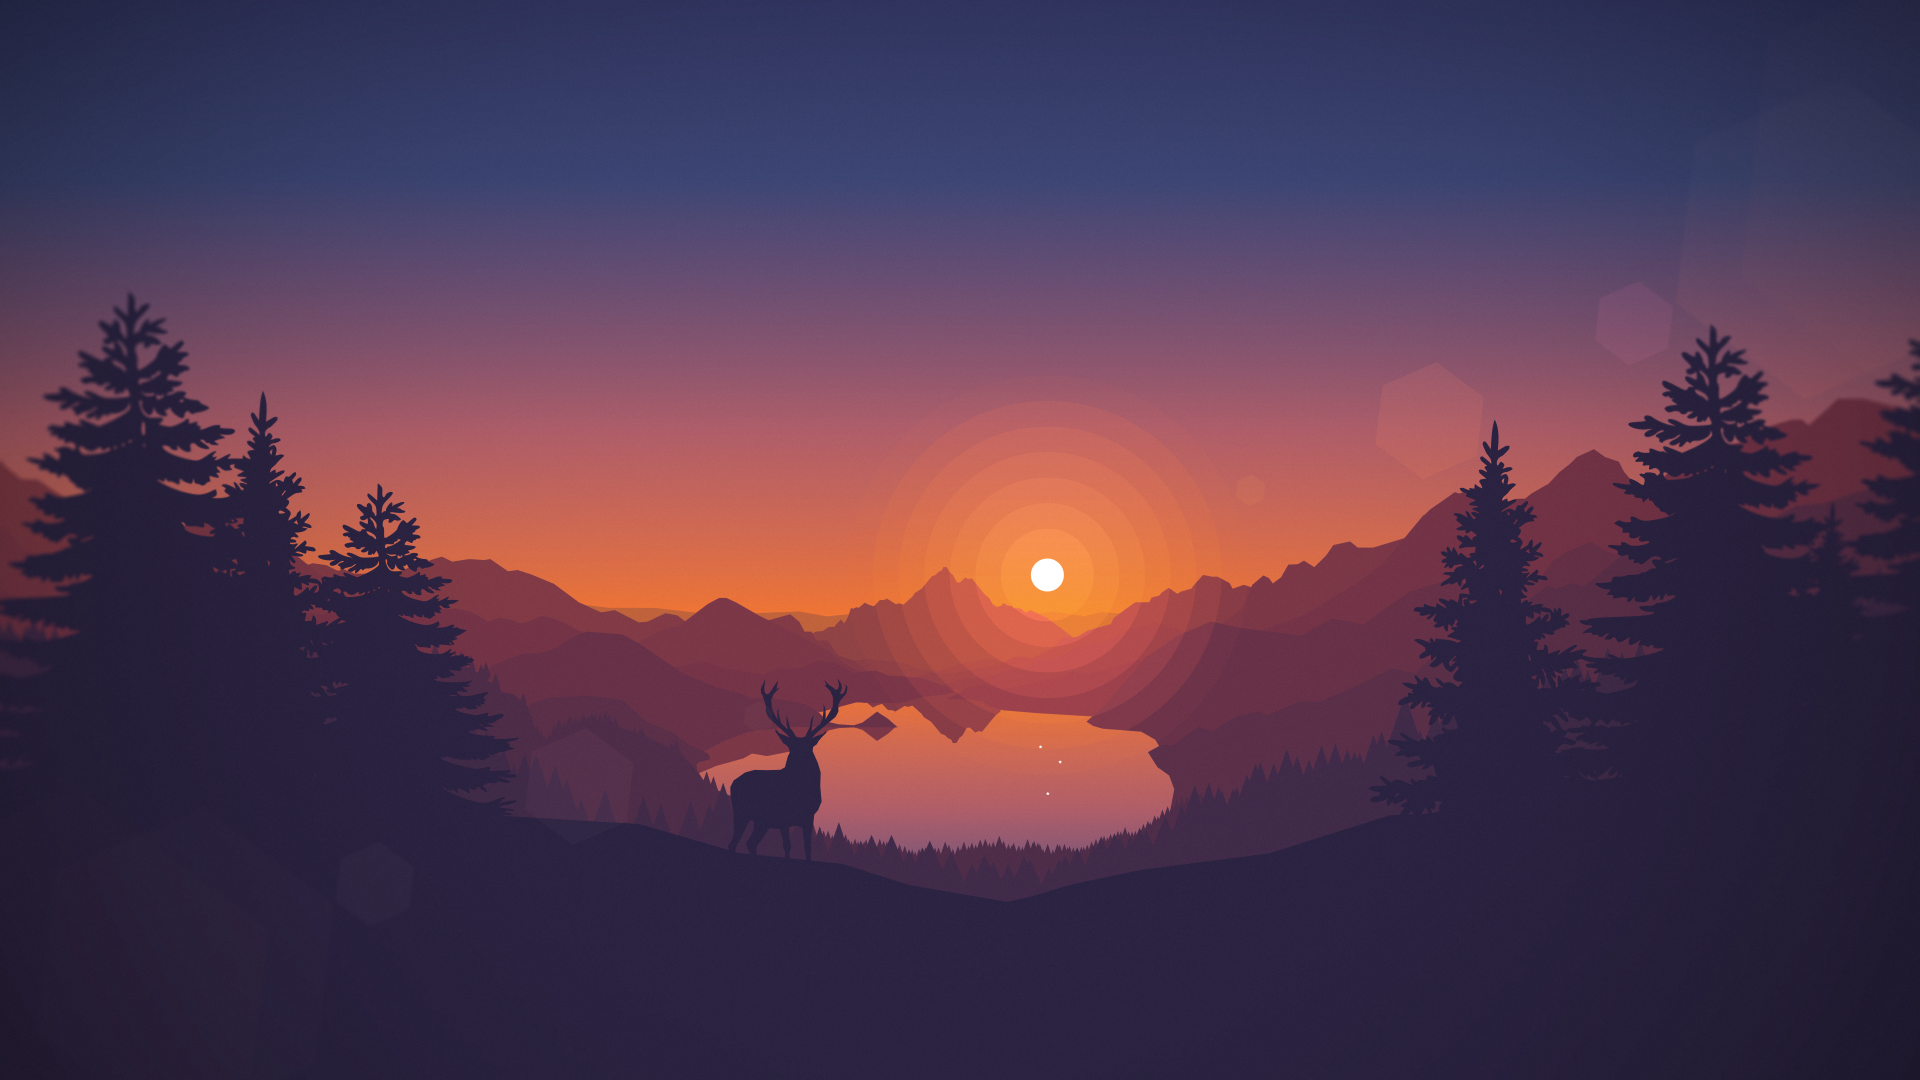 General 1920x1080 deer artwork silhouette landscape nature digital art trees pine trees sunset lake hills animals clear sky Firewatch video games drawing video game art